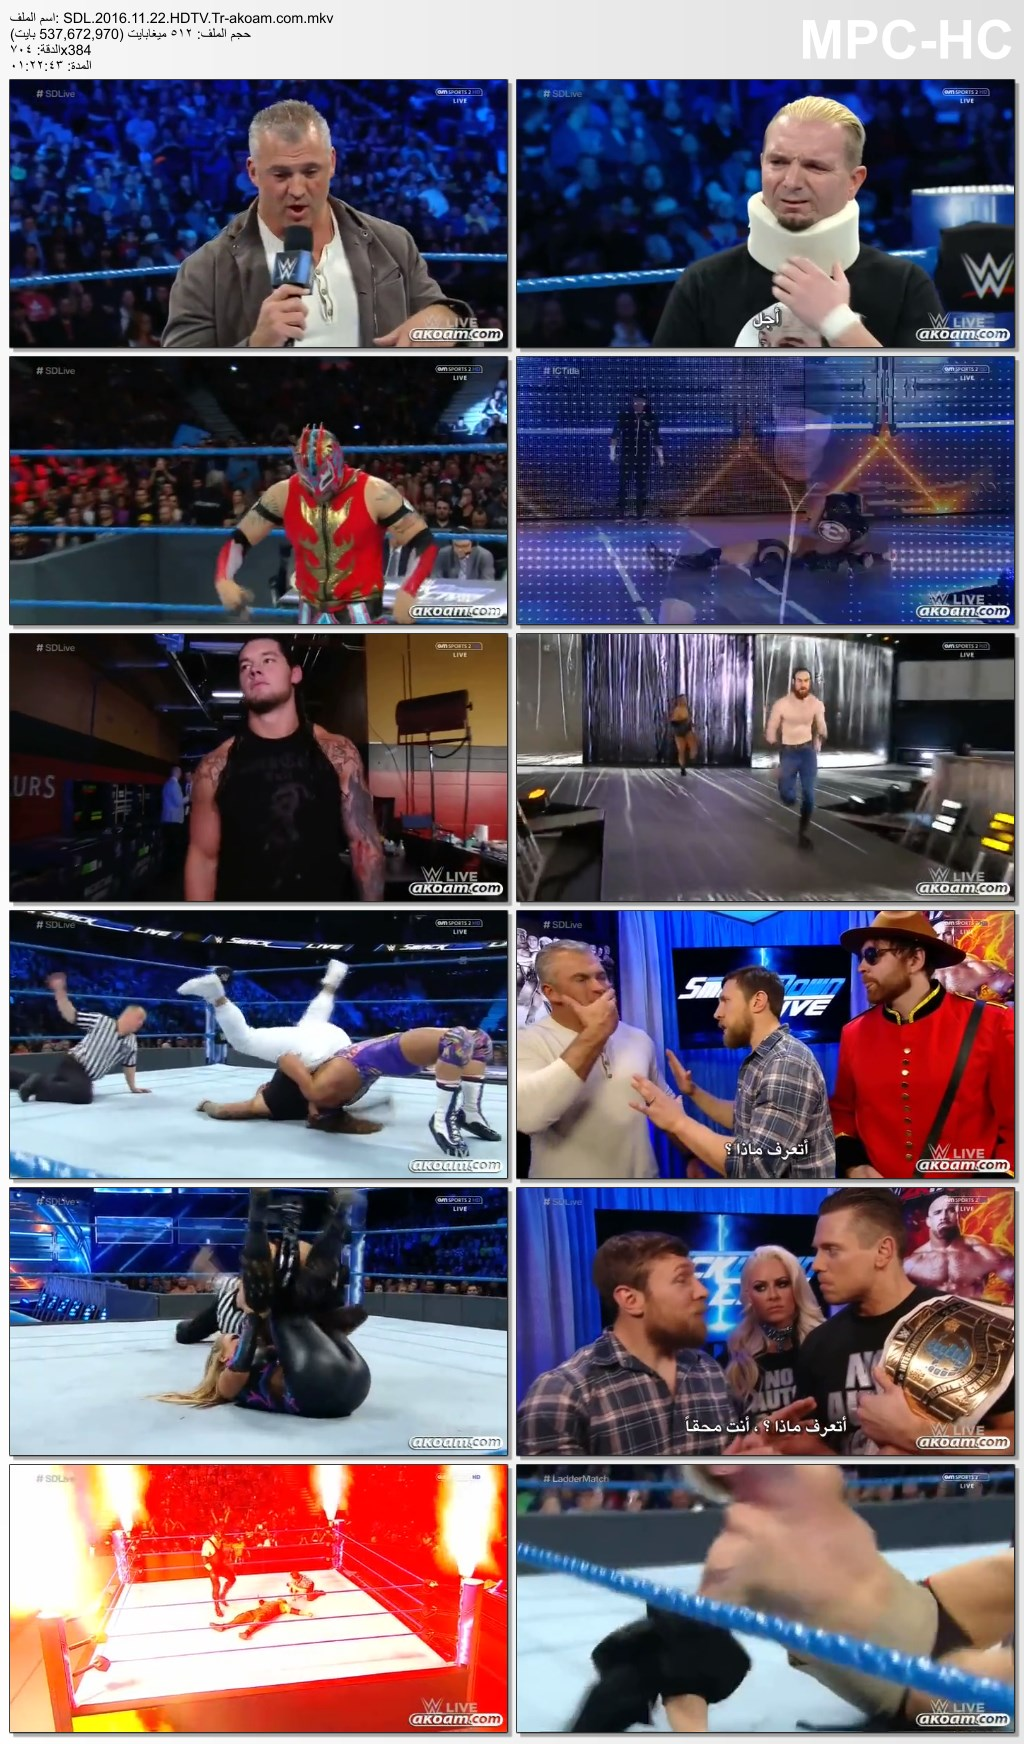 WWE Smackdown Live,WWE,Smackdown